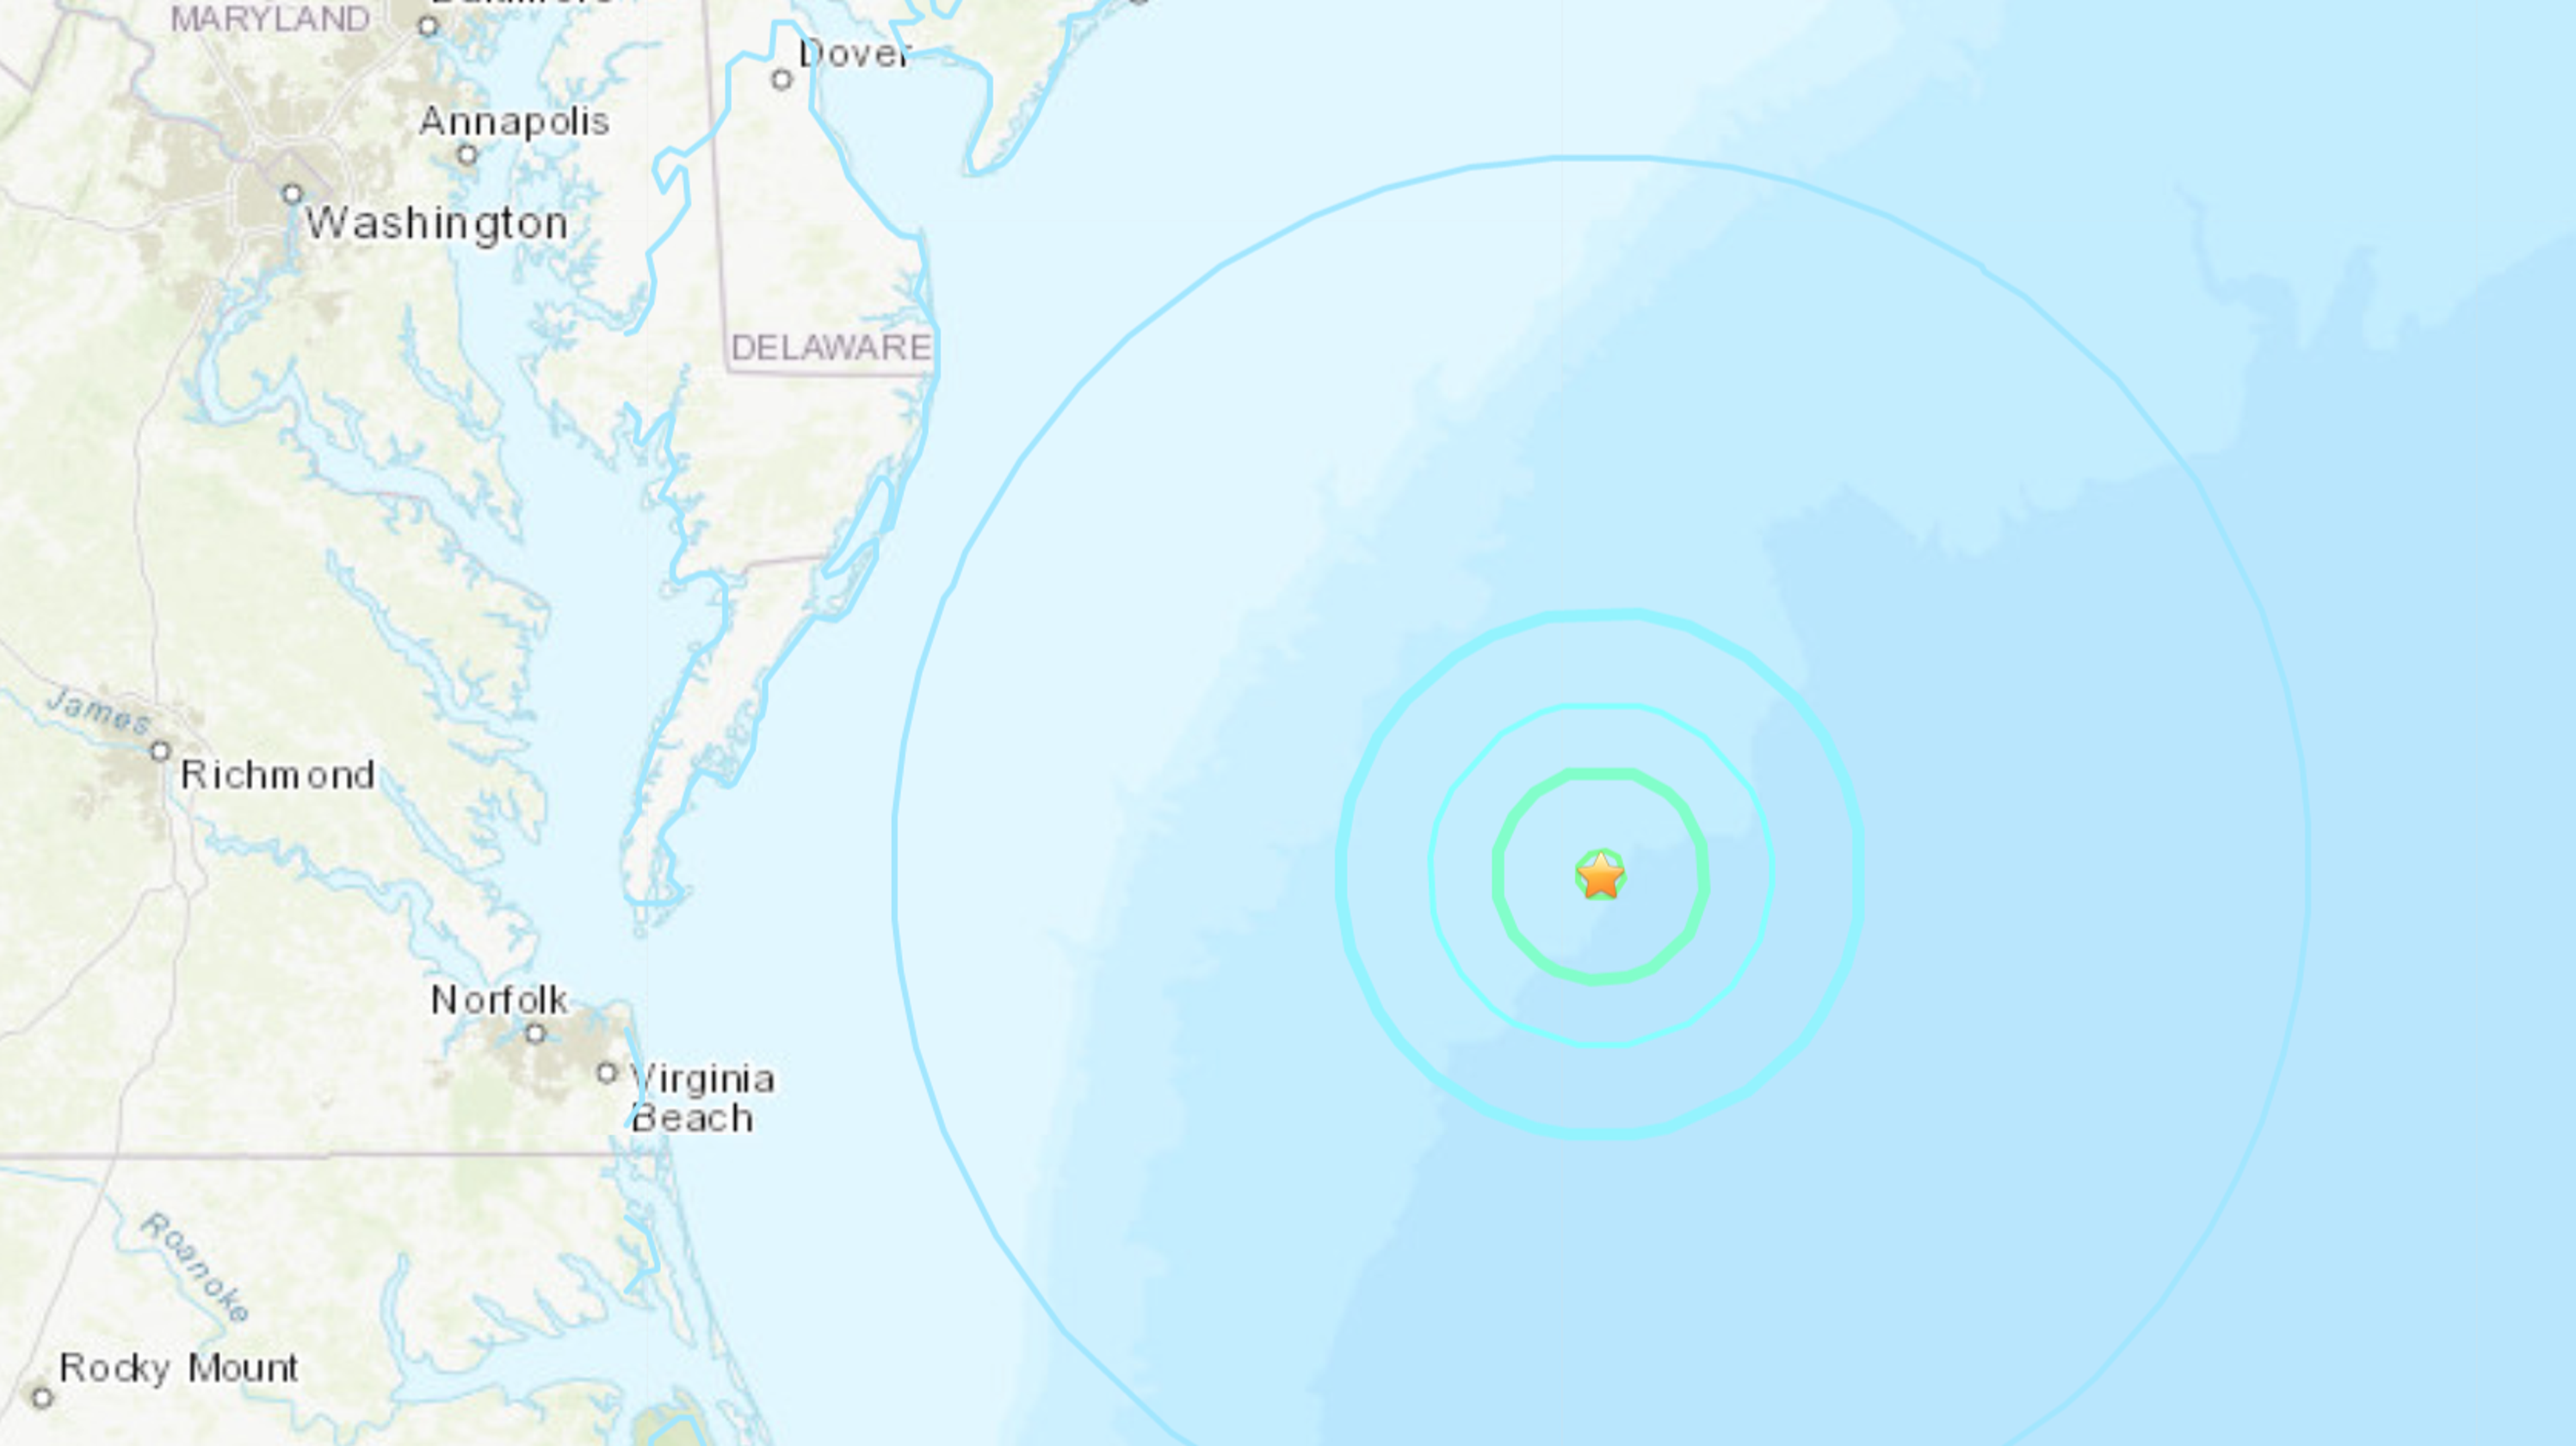 4.7 magnitude earthquake reported off coast of Ocean City, Maryland